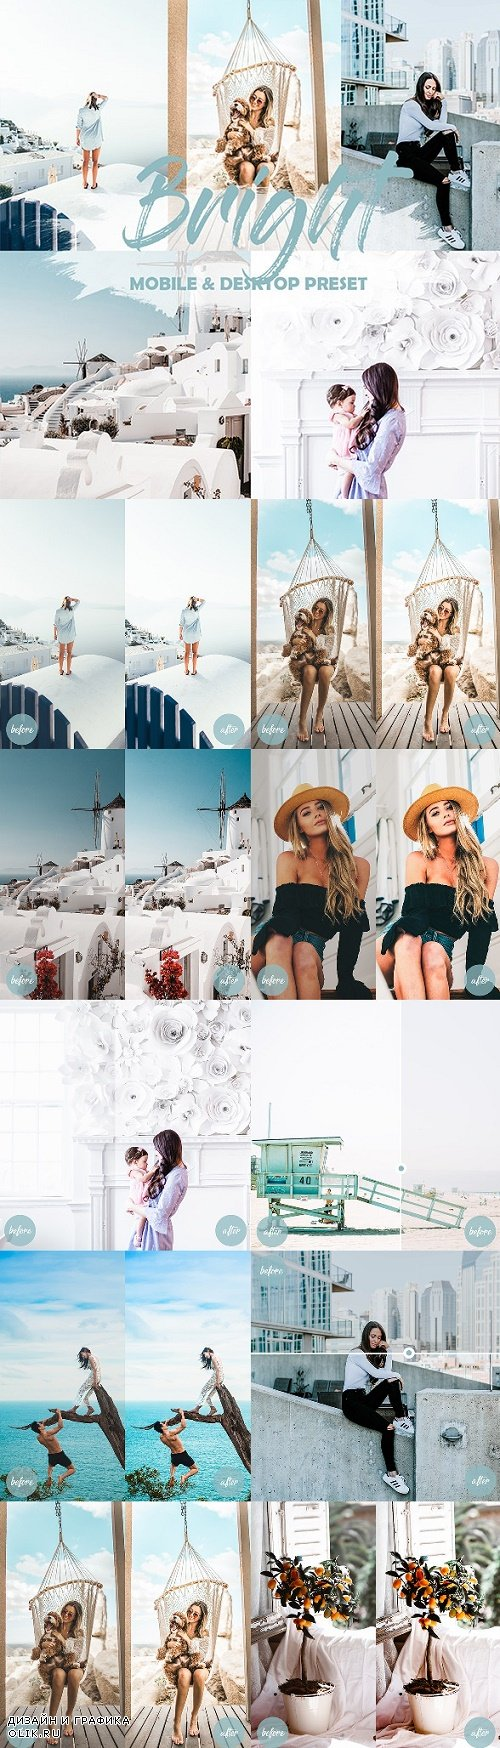 Bright Mobile Lightroom Preset - 23730233